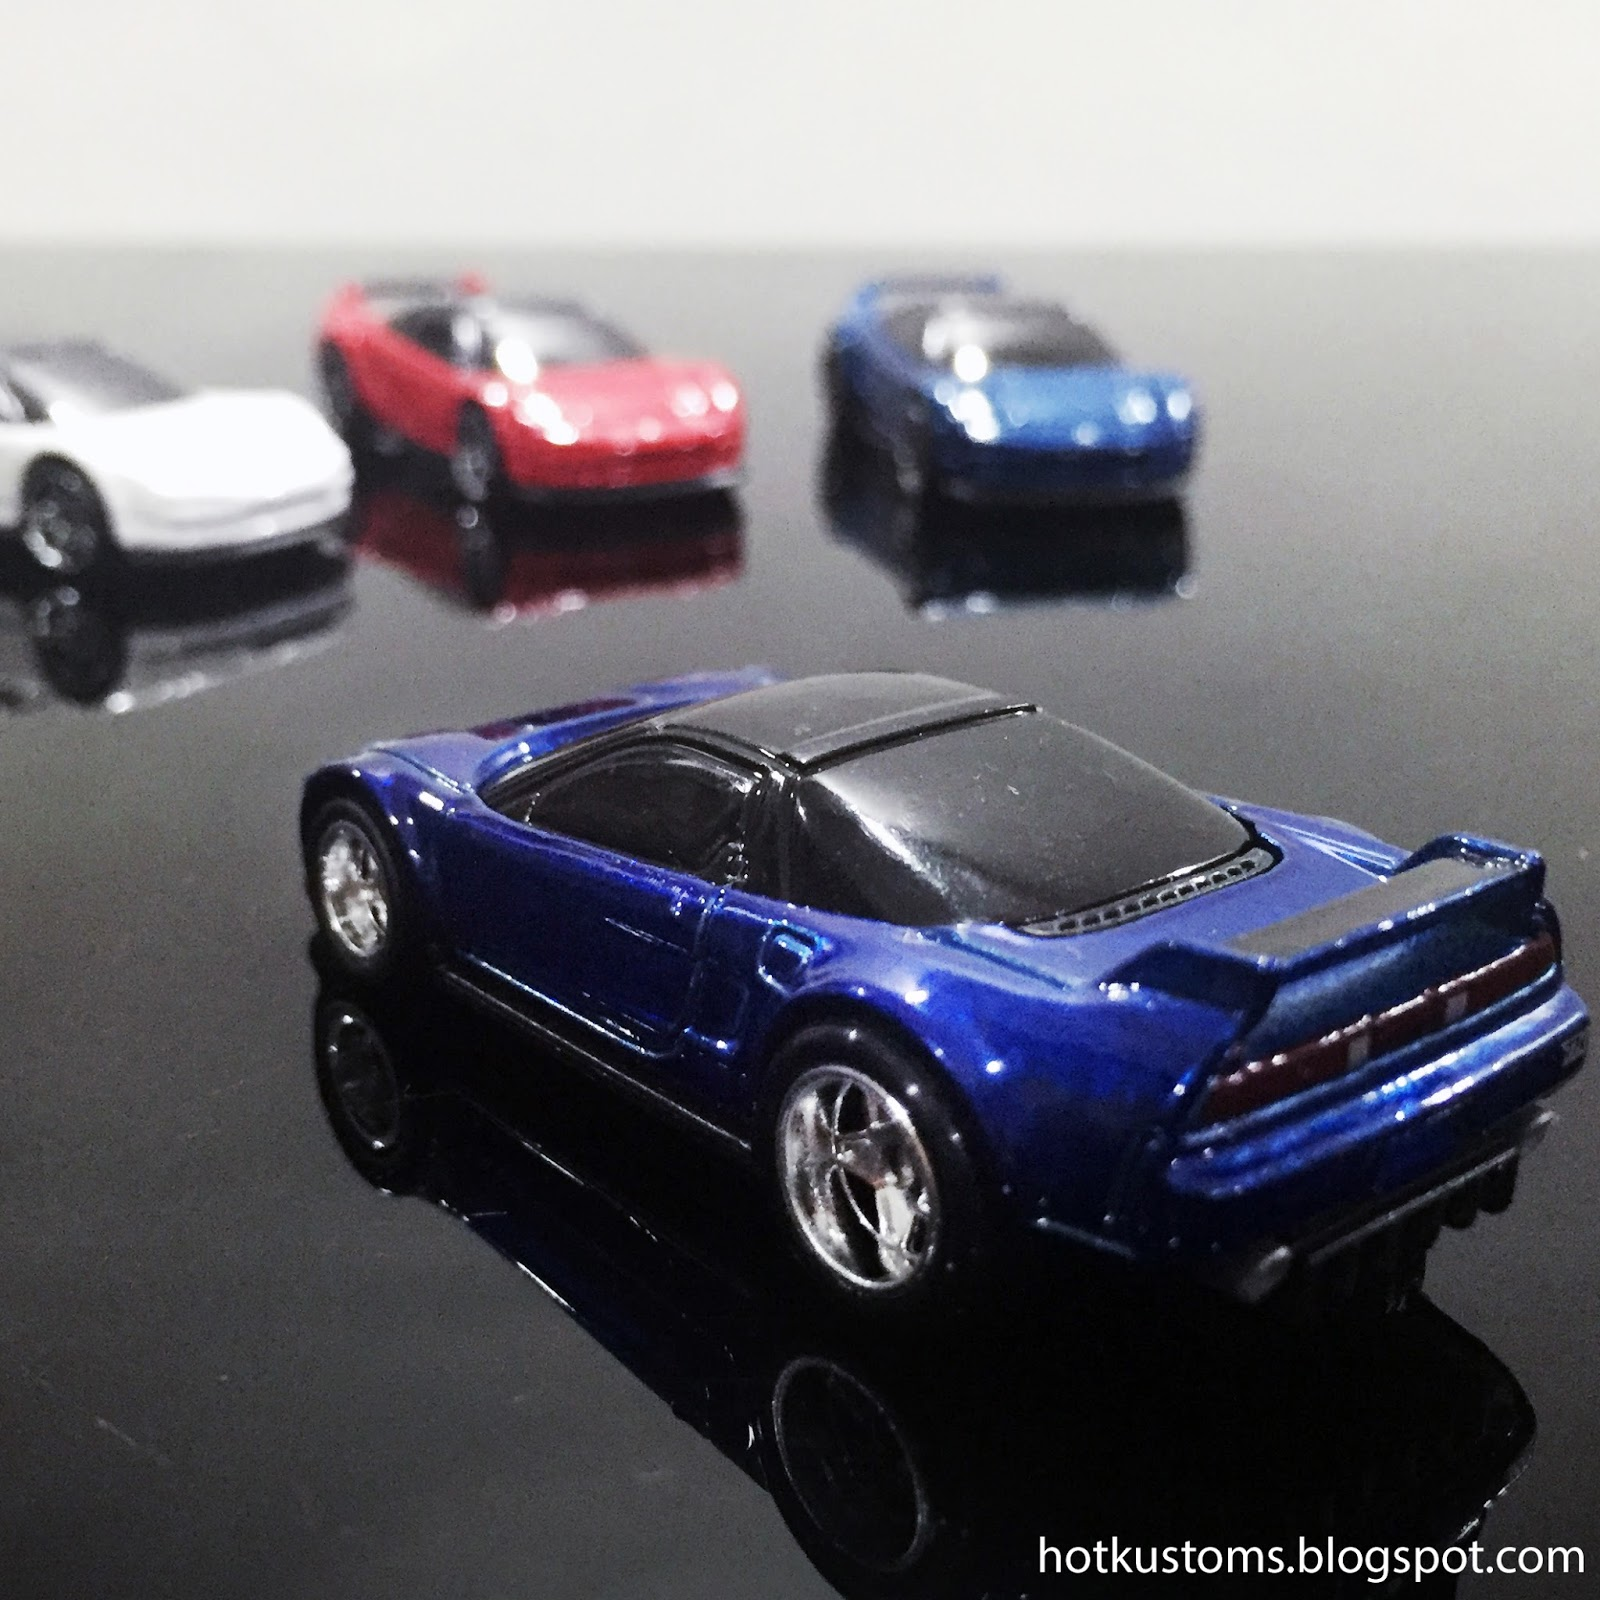 Hot Kustoms Mini Cars: 2016 '90 Acura NSX Super Treasure Hunt